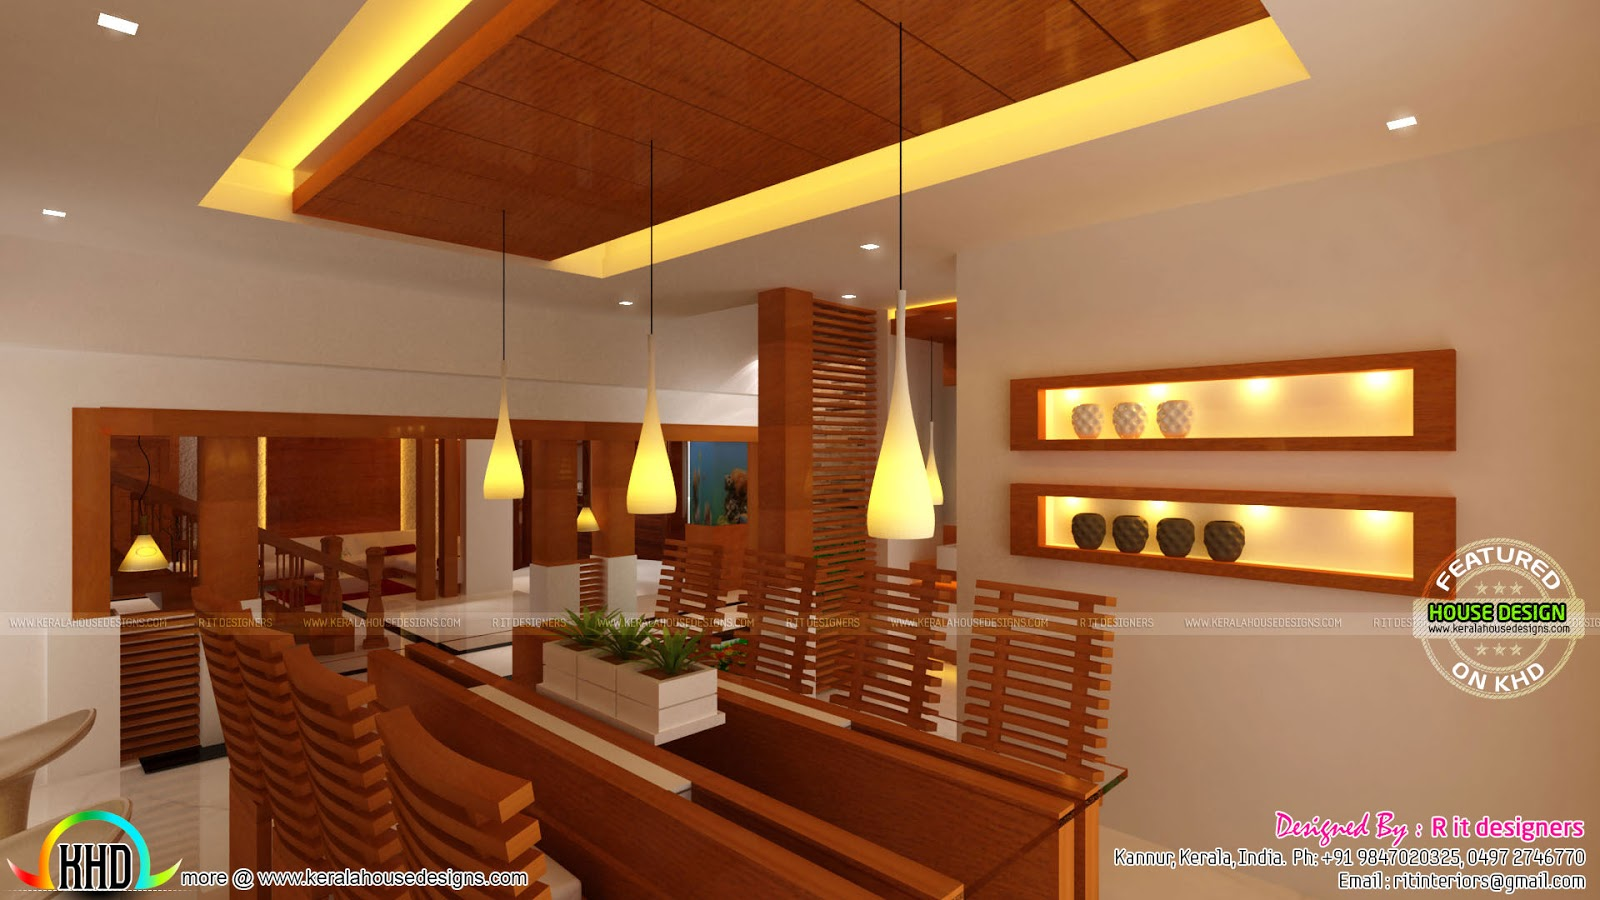 wooden finish interior designs kerala home design and floor plans. Black Bedroom Furniture Sets. Home Design Ideas